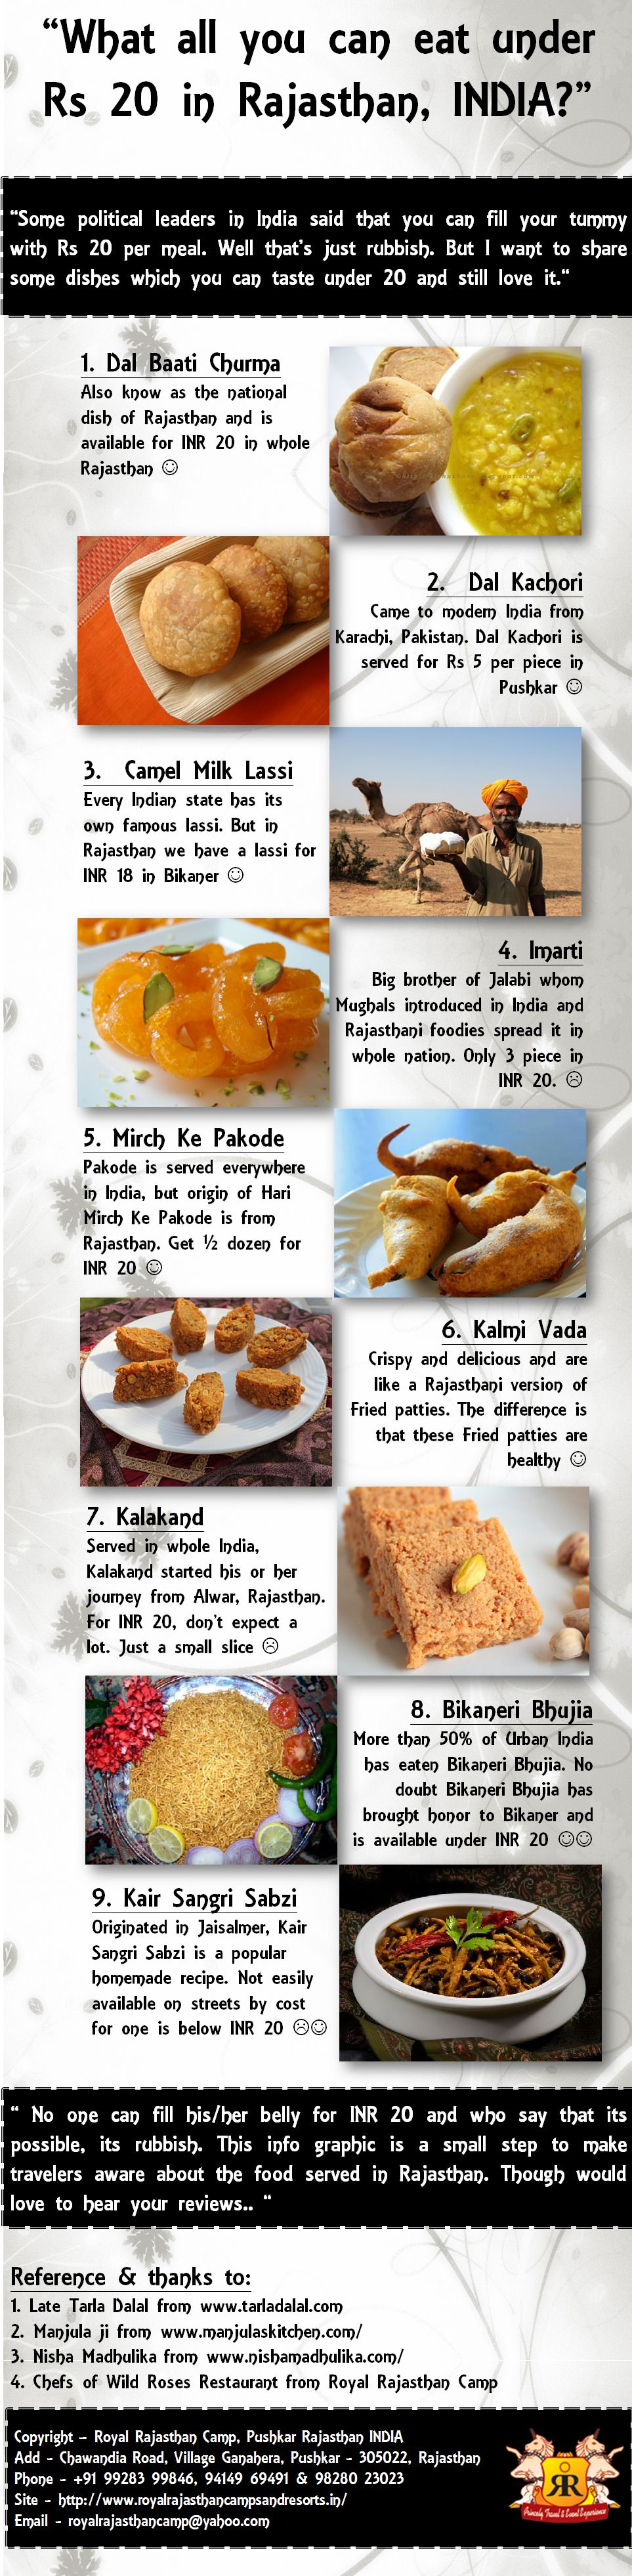 Infographic on Rajasthani food